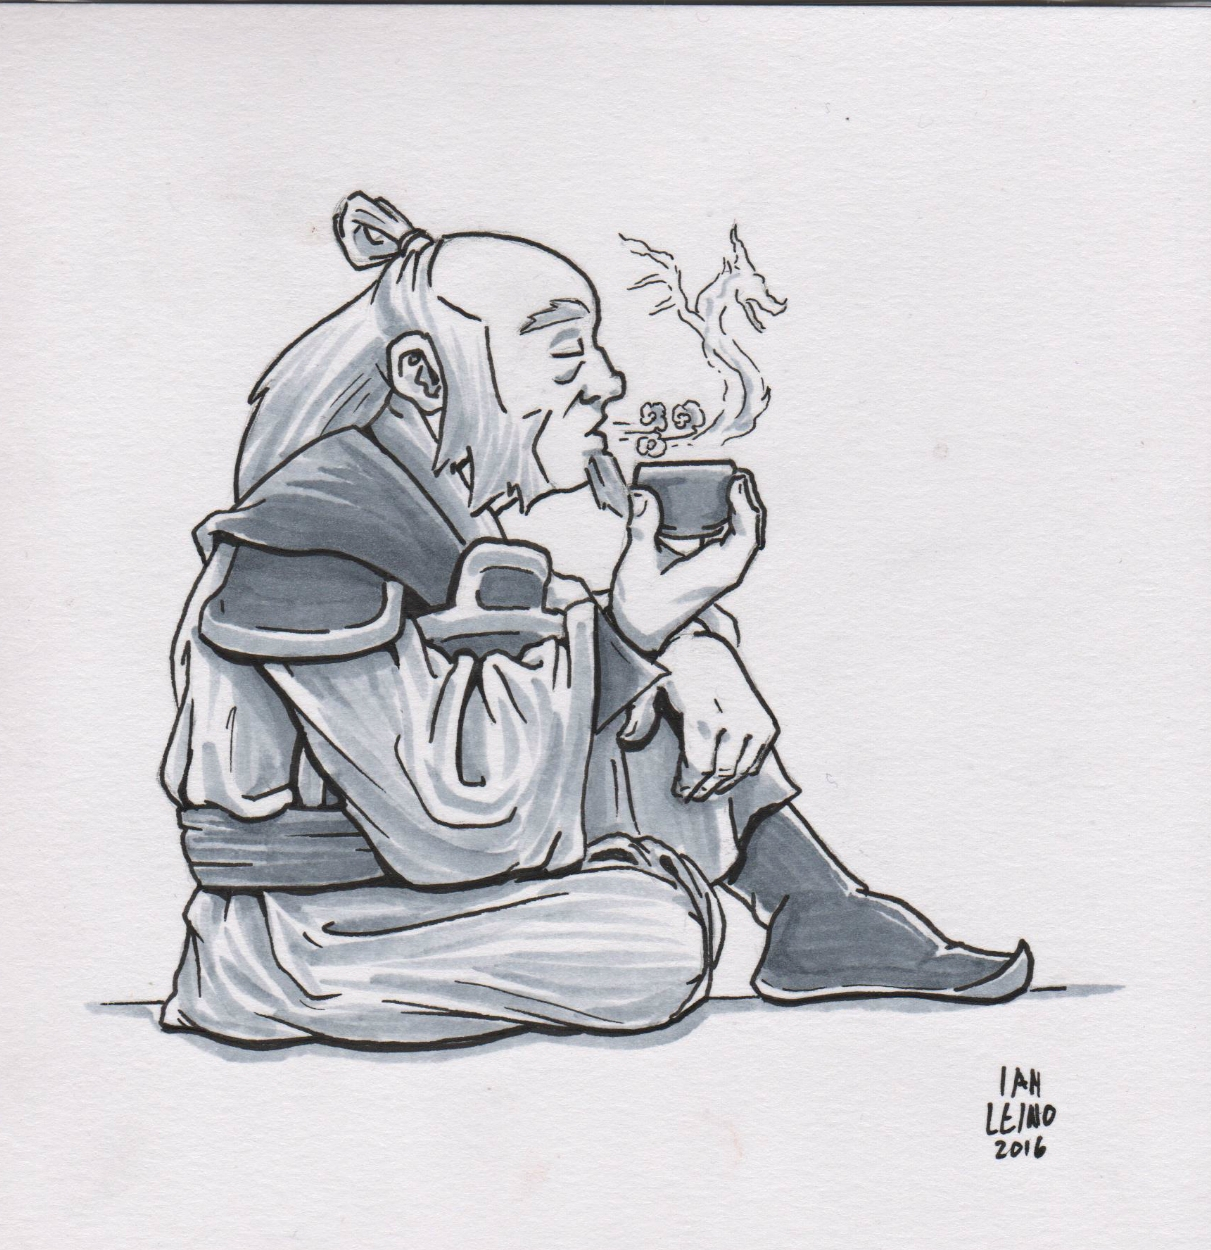 Avatar the last airbender uncle iroh by ian leino comic art